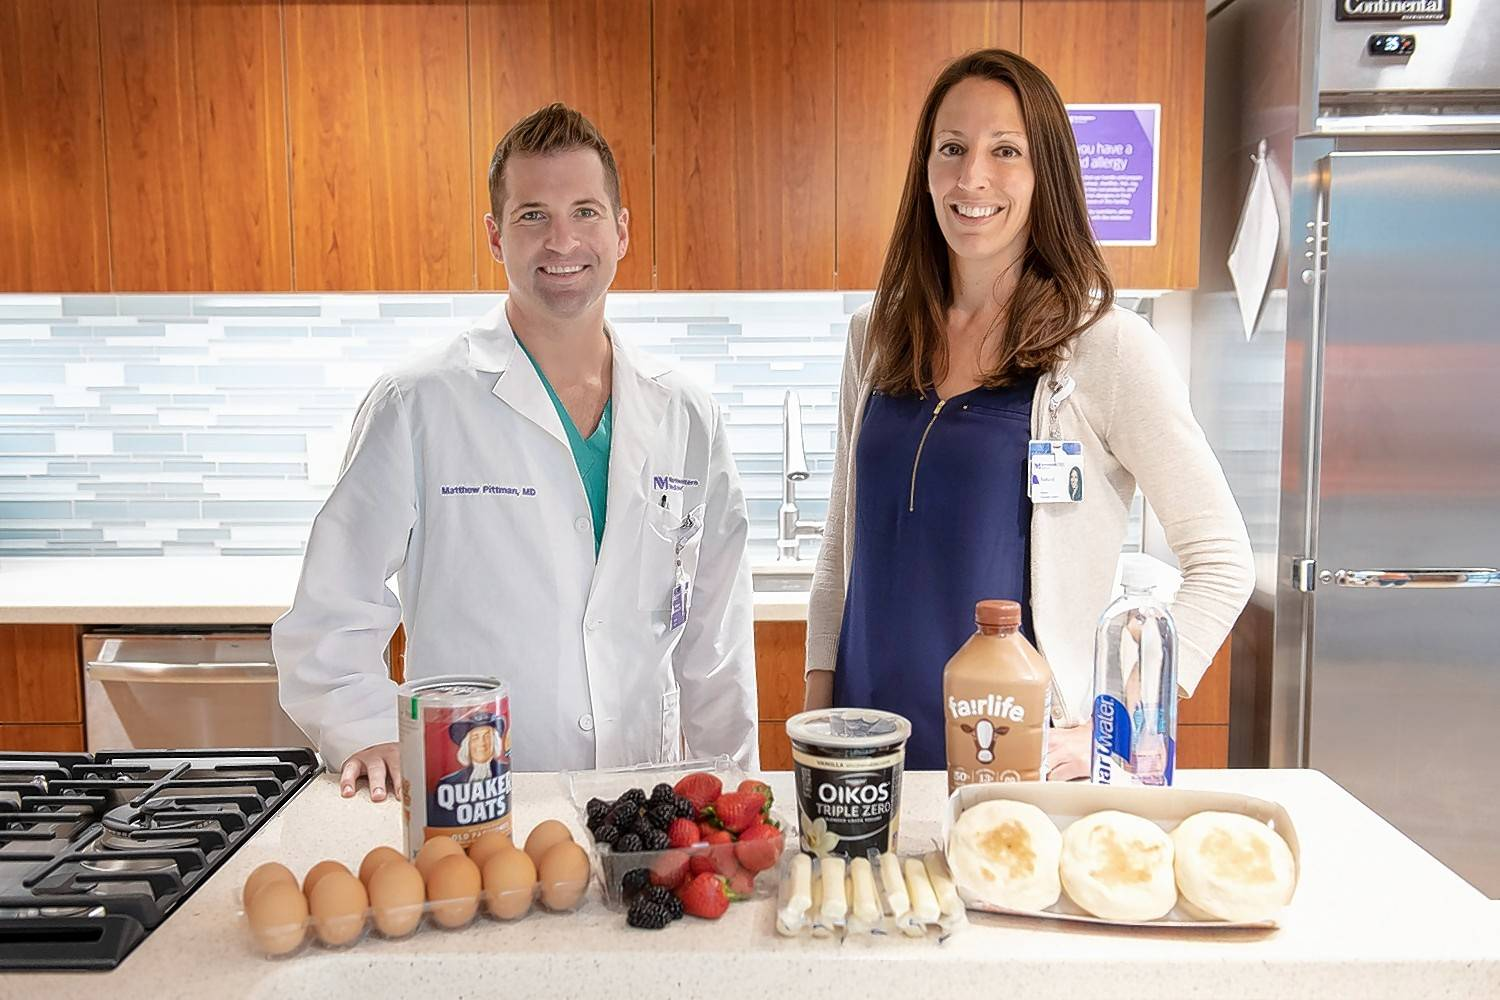 Dietitian Audra Wilson and medical director Dr. Matt Pittman of Northwestern Medicine Metabolic Health and Surgical Weight Loss Center at Delnor Hospital offer tips to avoid pitfalls that will ruin your efforts to lose weight.